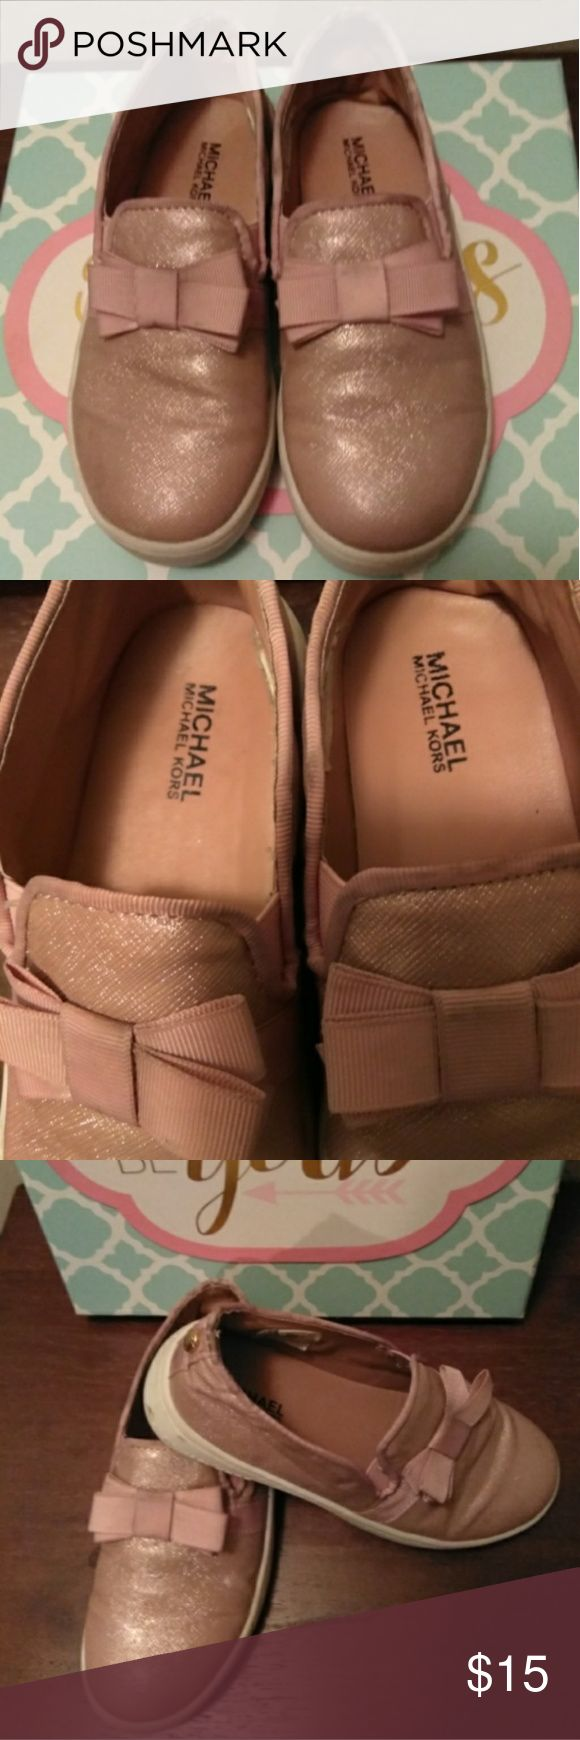 Comfortable girls loafers [Michael Kors] Color [blush pink] with a bow on the top! Very comfortable and cute! Michael Kors Shoes Sneakers